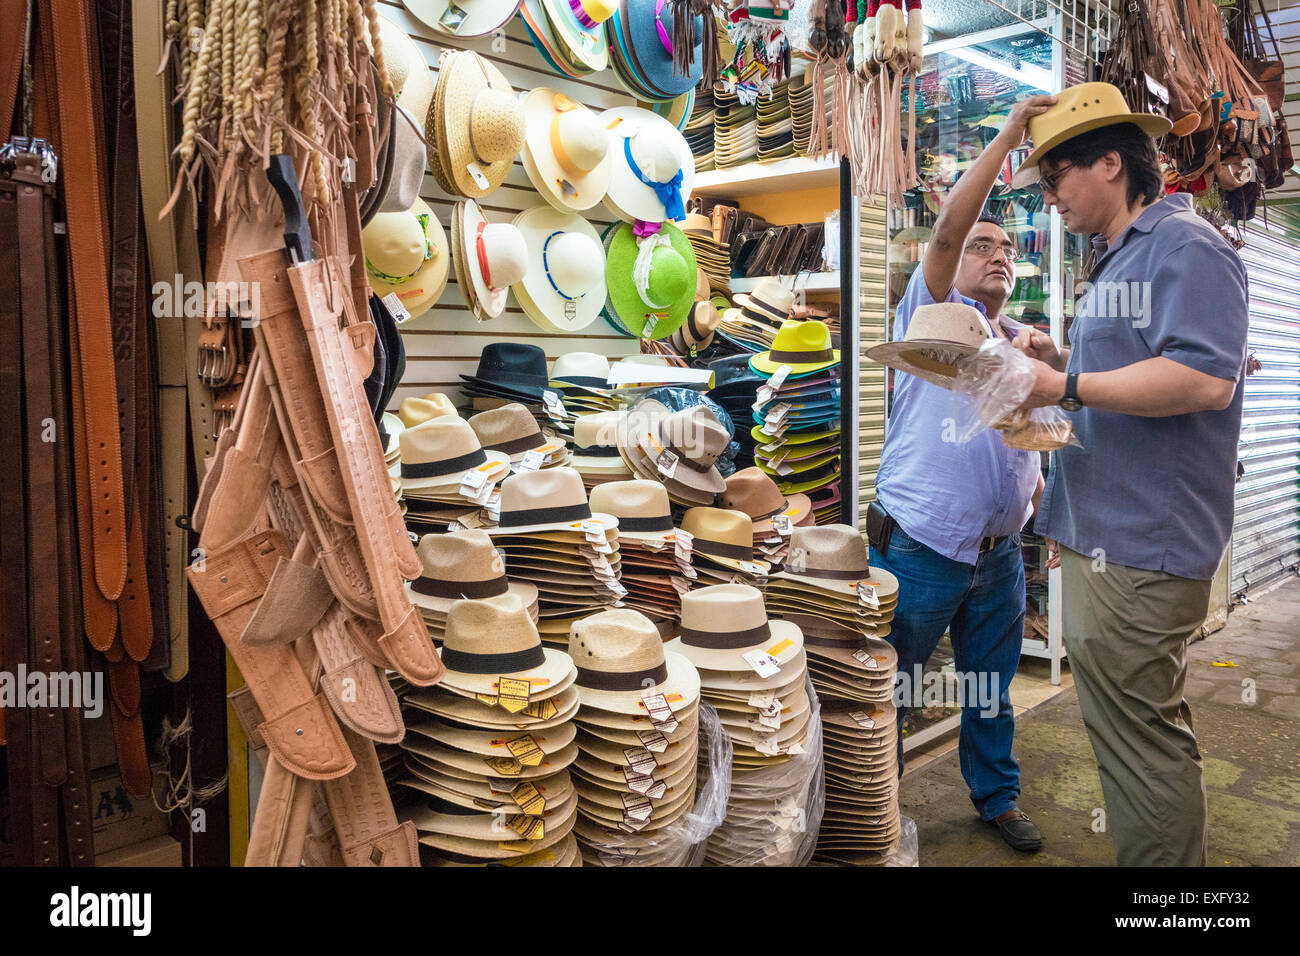 Salesman reaching to put a straw hat on a customer shopping at a market in Oaxaca Mexico - Stock Image